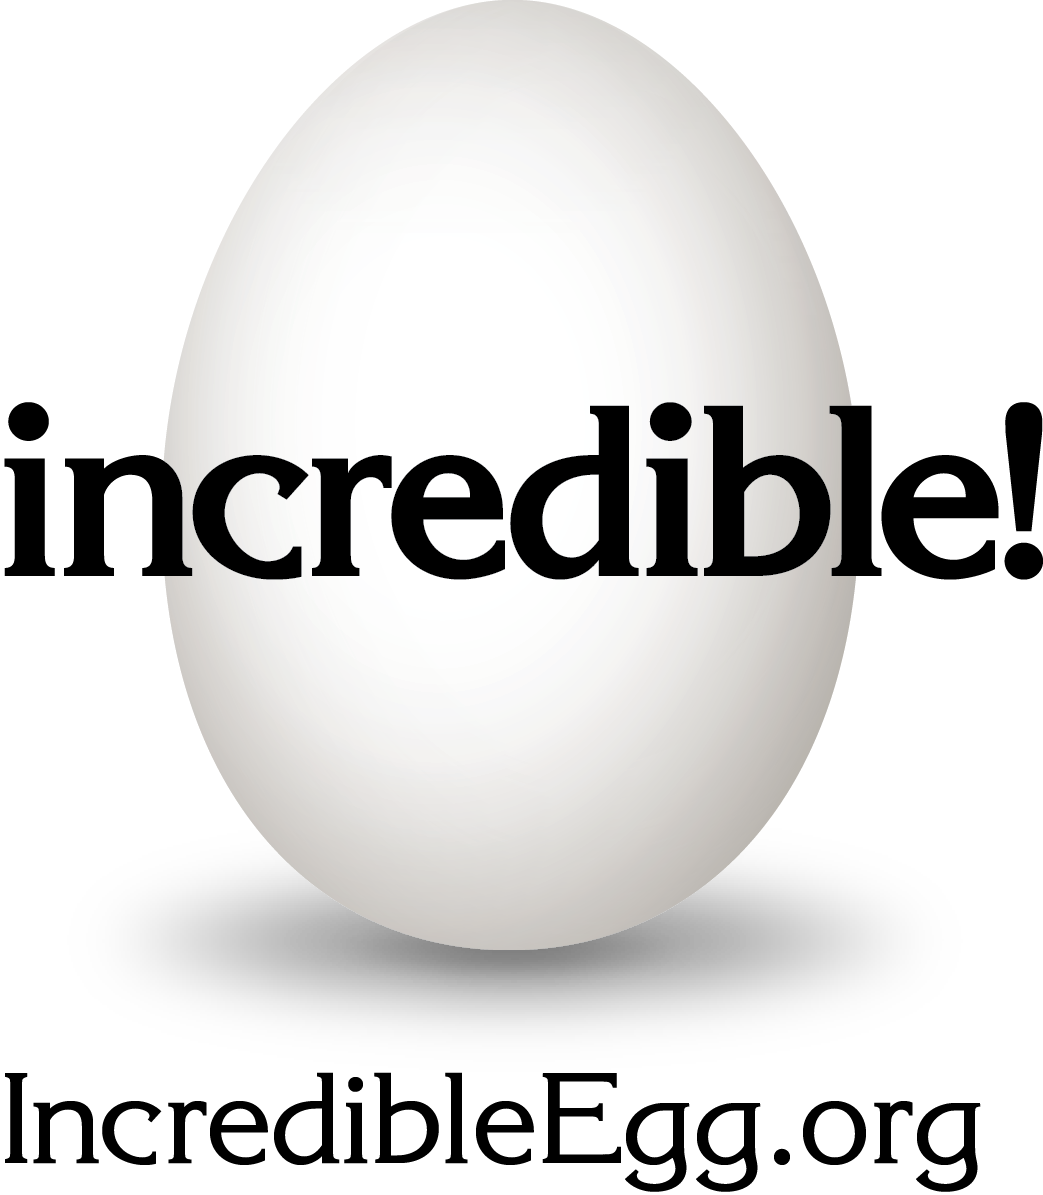 Two eggs png. Infographic egg cellent news